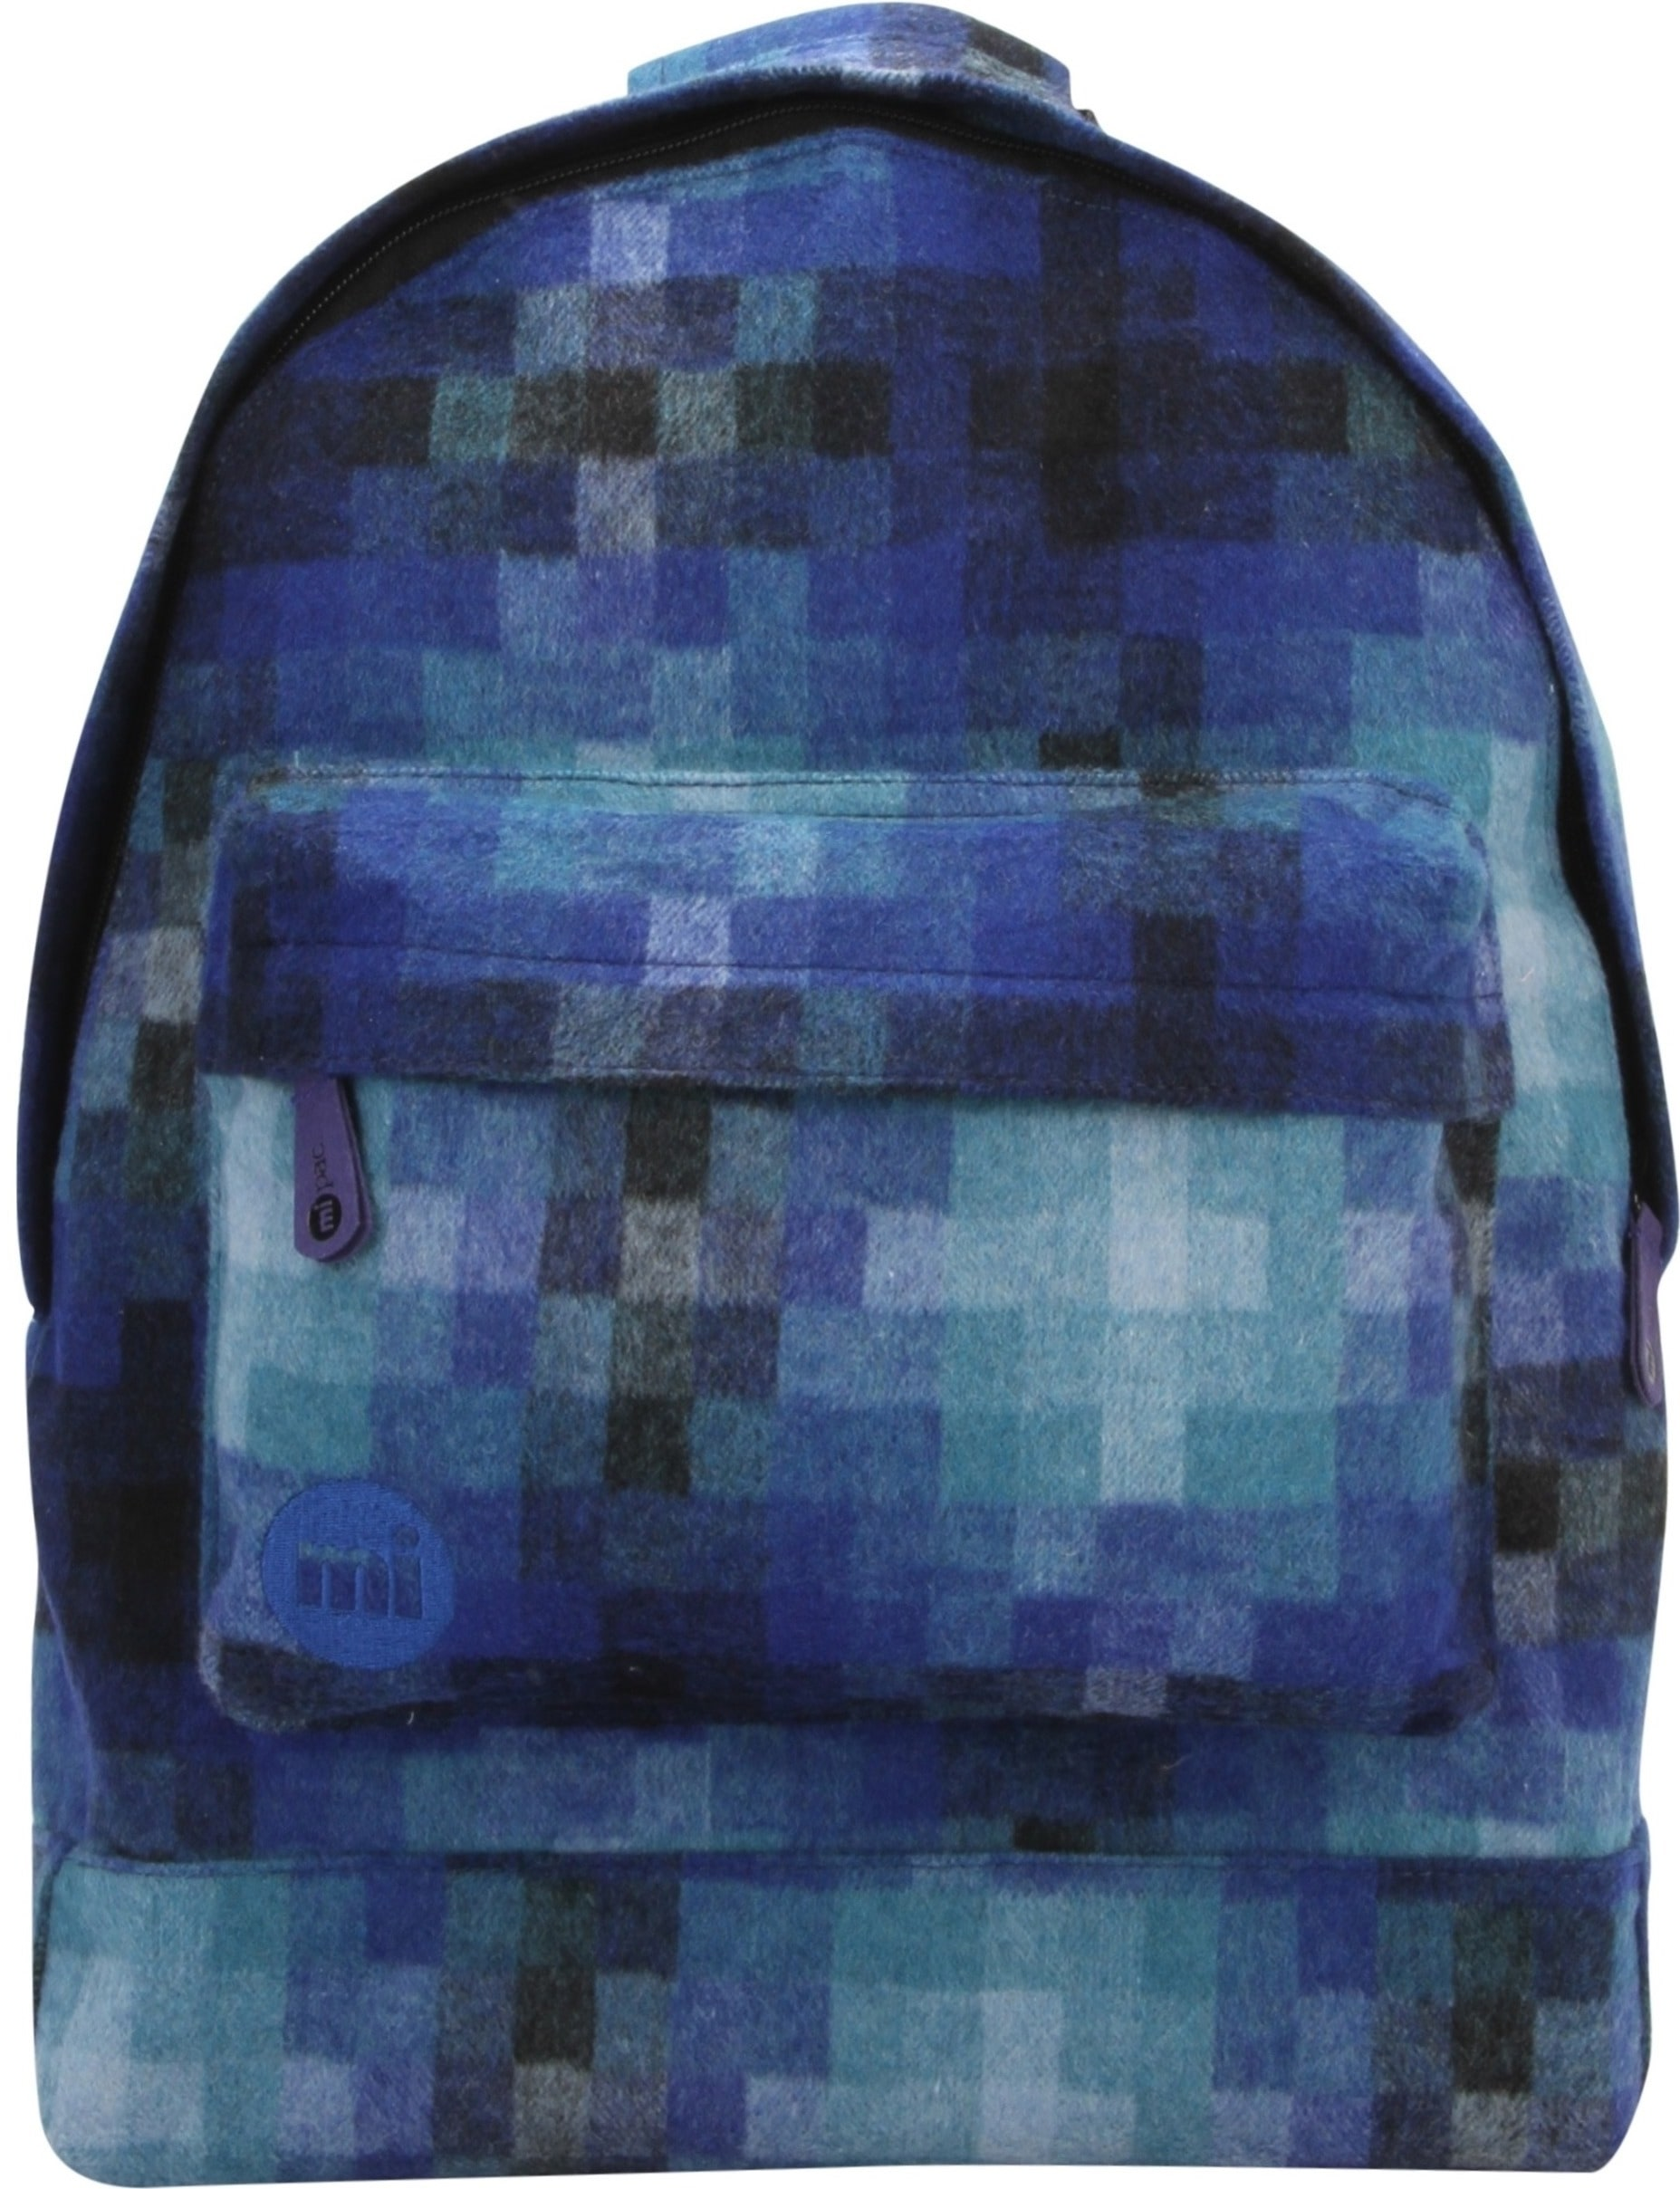 MiPac Pixel Check Backpack  Blue